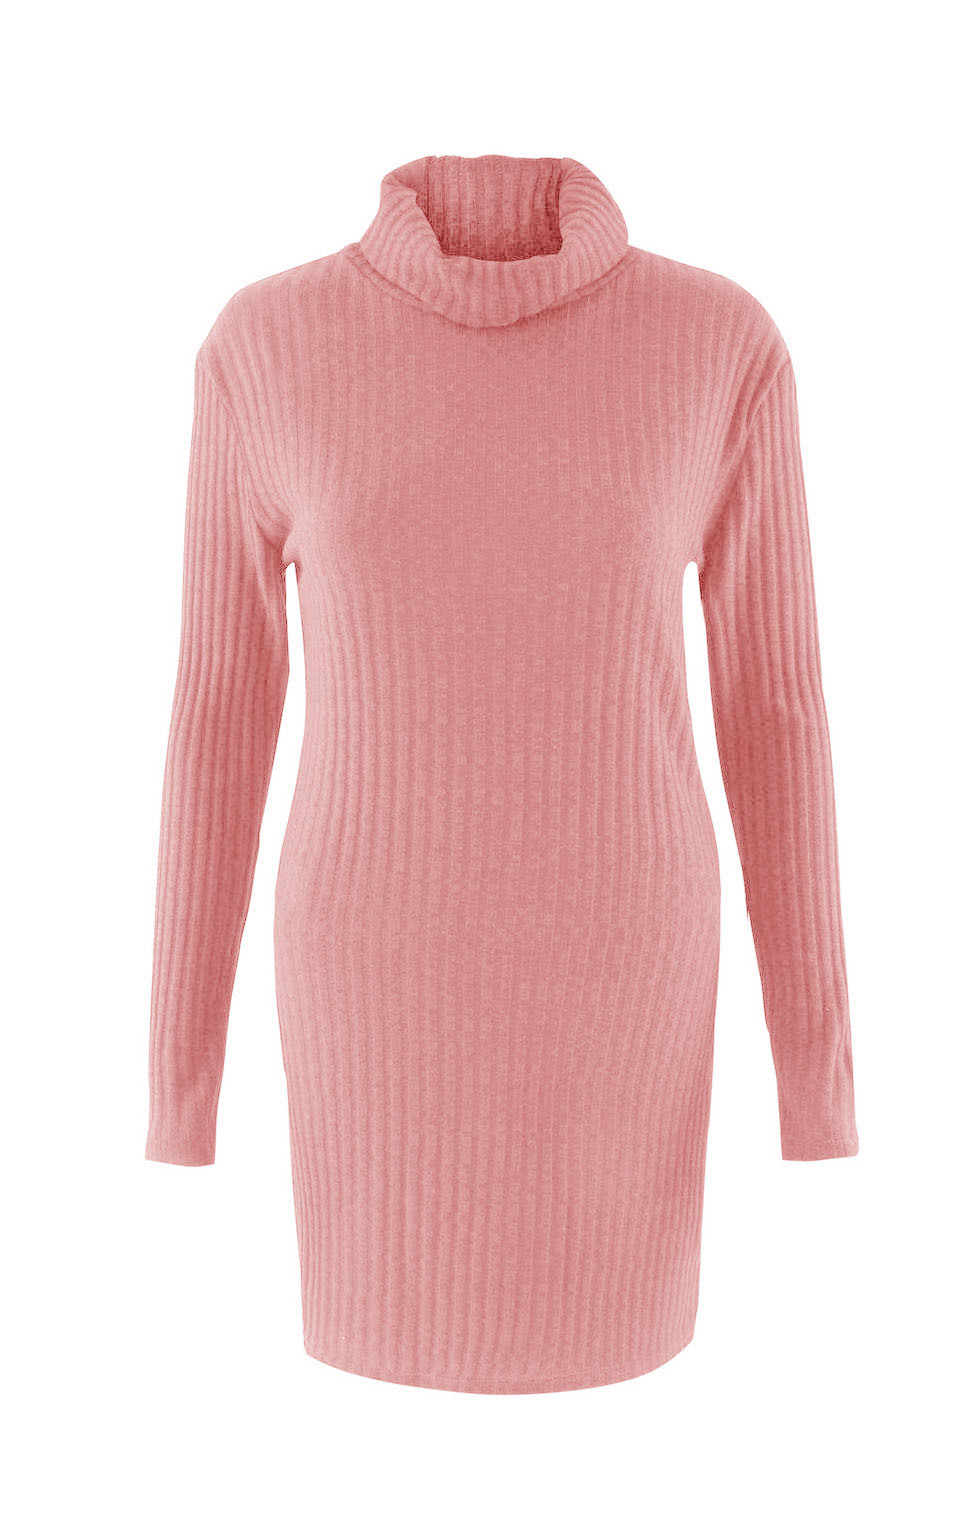 Turtleneck Long knitted pullover sweater, Women's Jumper, Casual Sweater 43